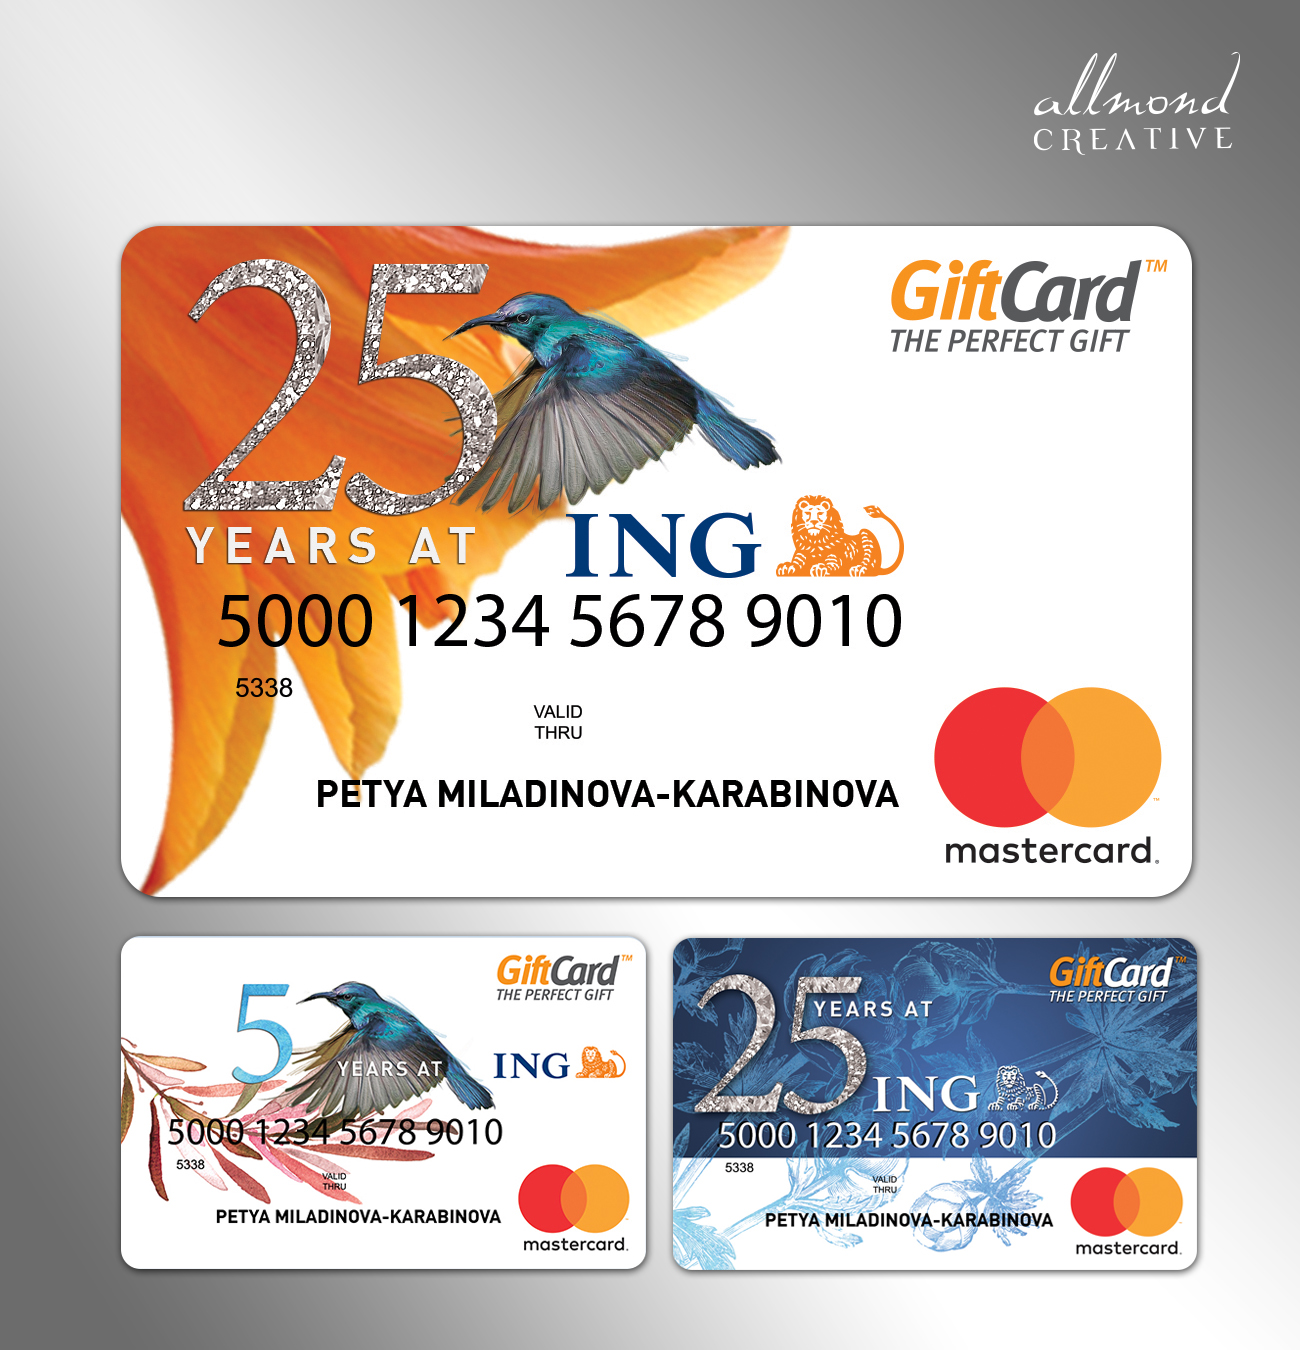 ING corporate gift cards design by allmond